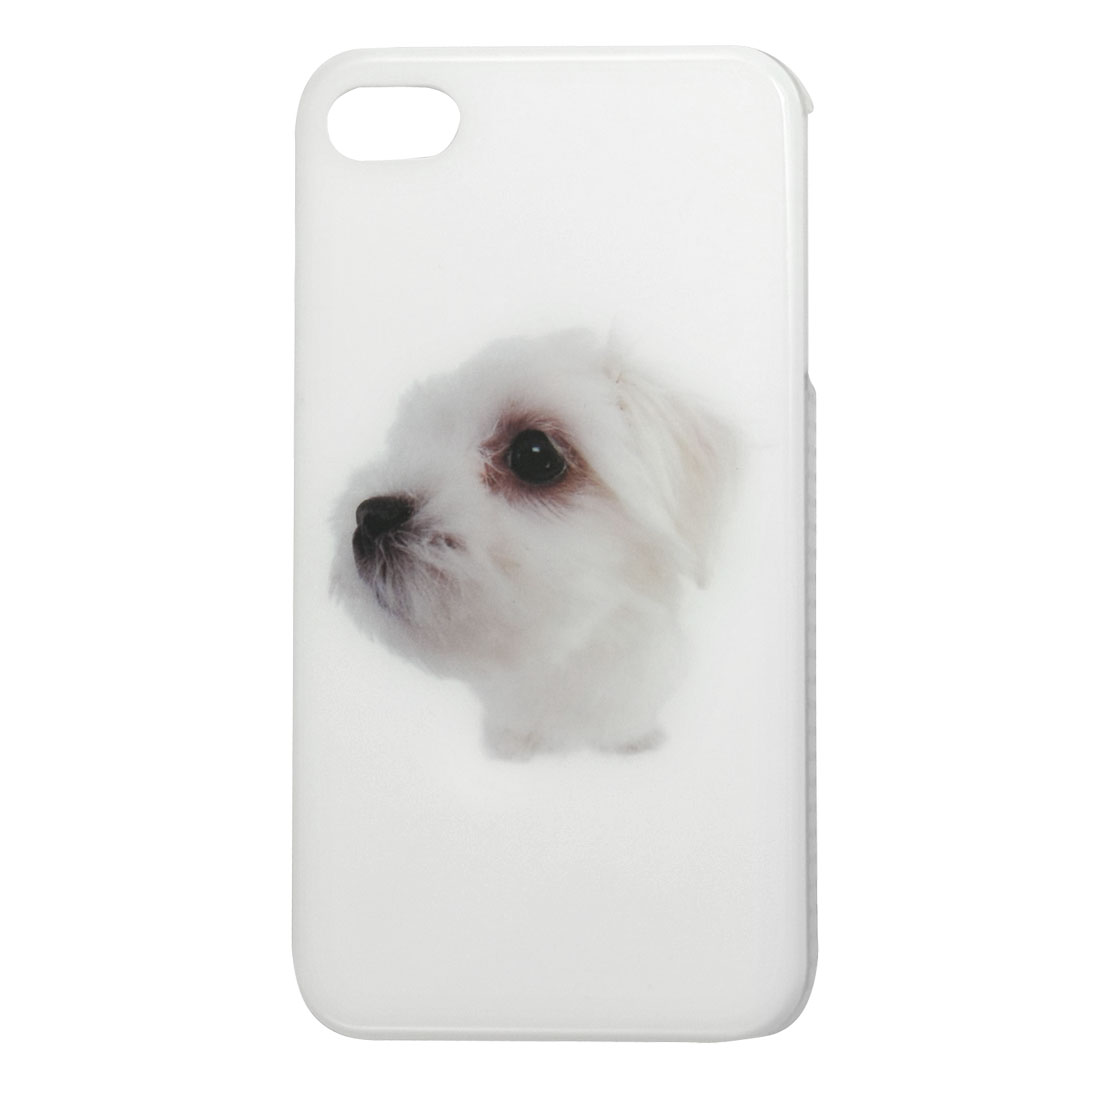 White Dog Print Hard Plastic IMD Back Shell Case for iPhone 4 4G 4S